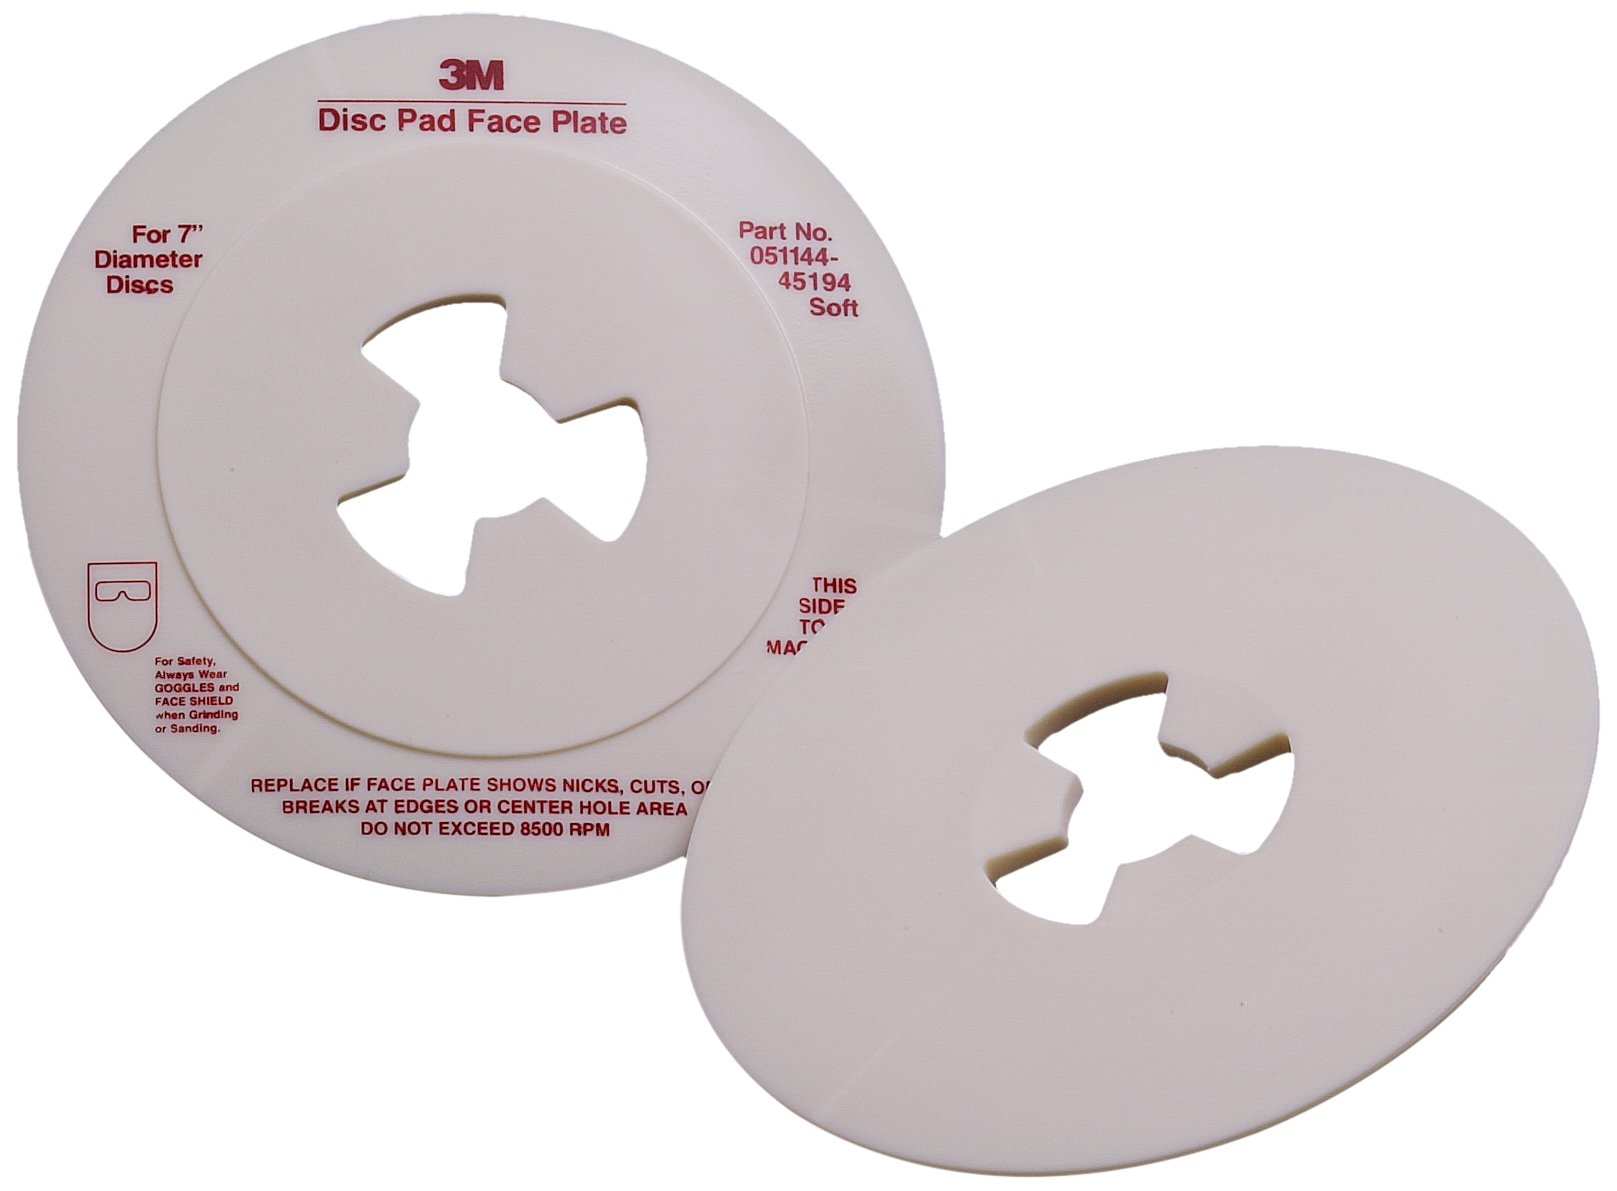 3M Disc Pad Face Plate 45194, 7'' Diameter, Soft, White (Pack of 10)